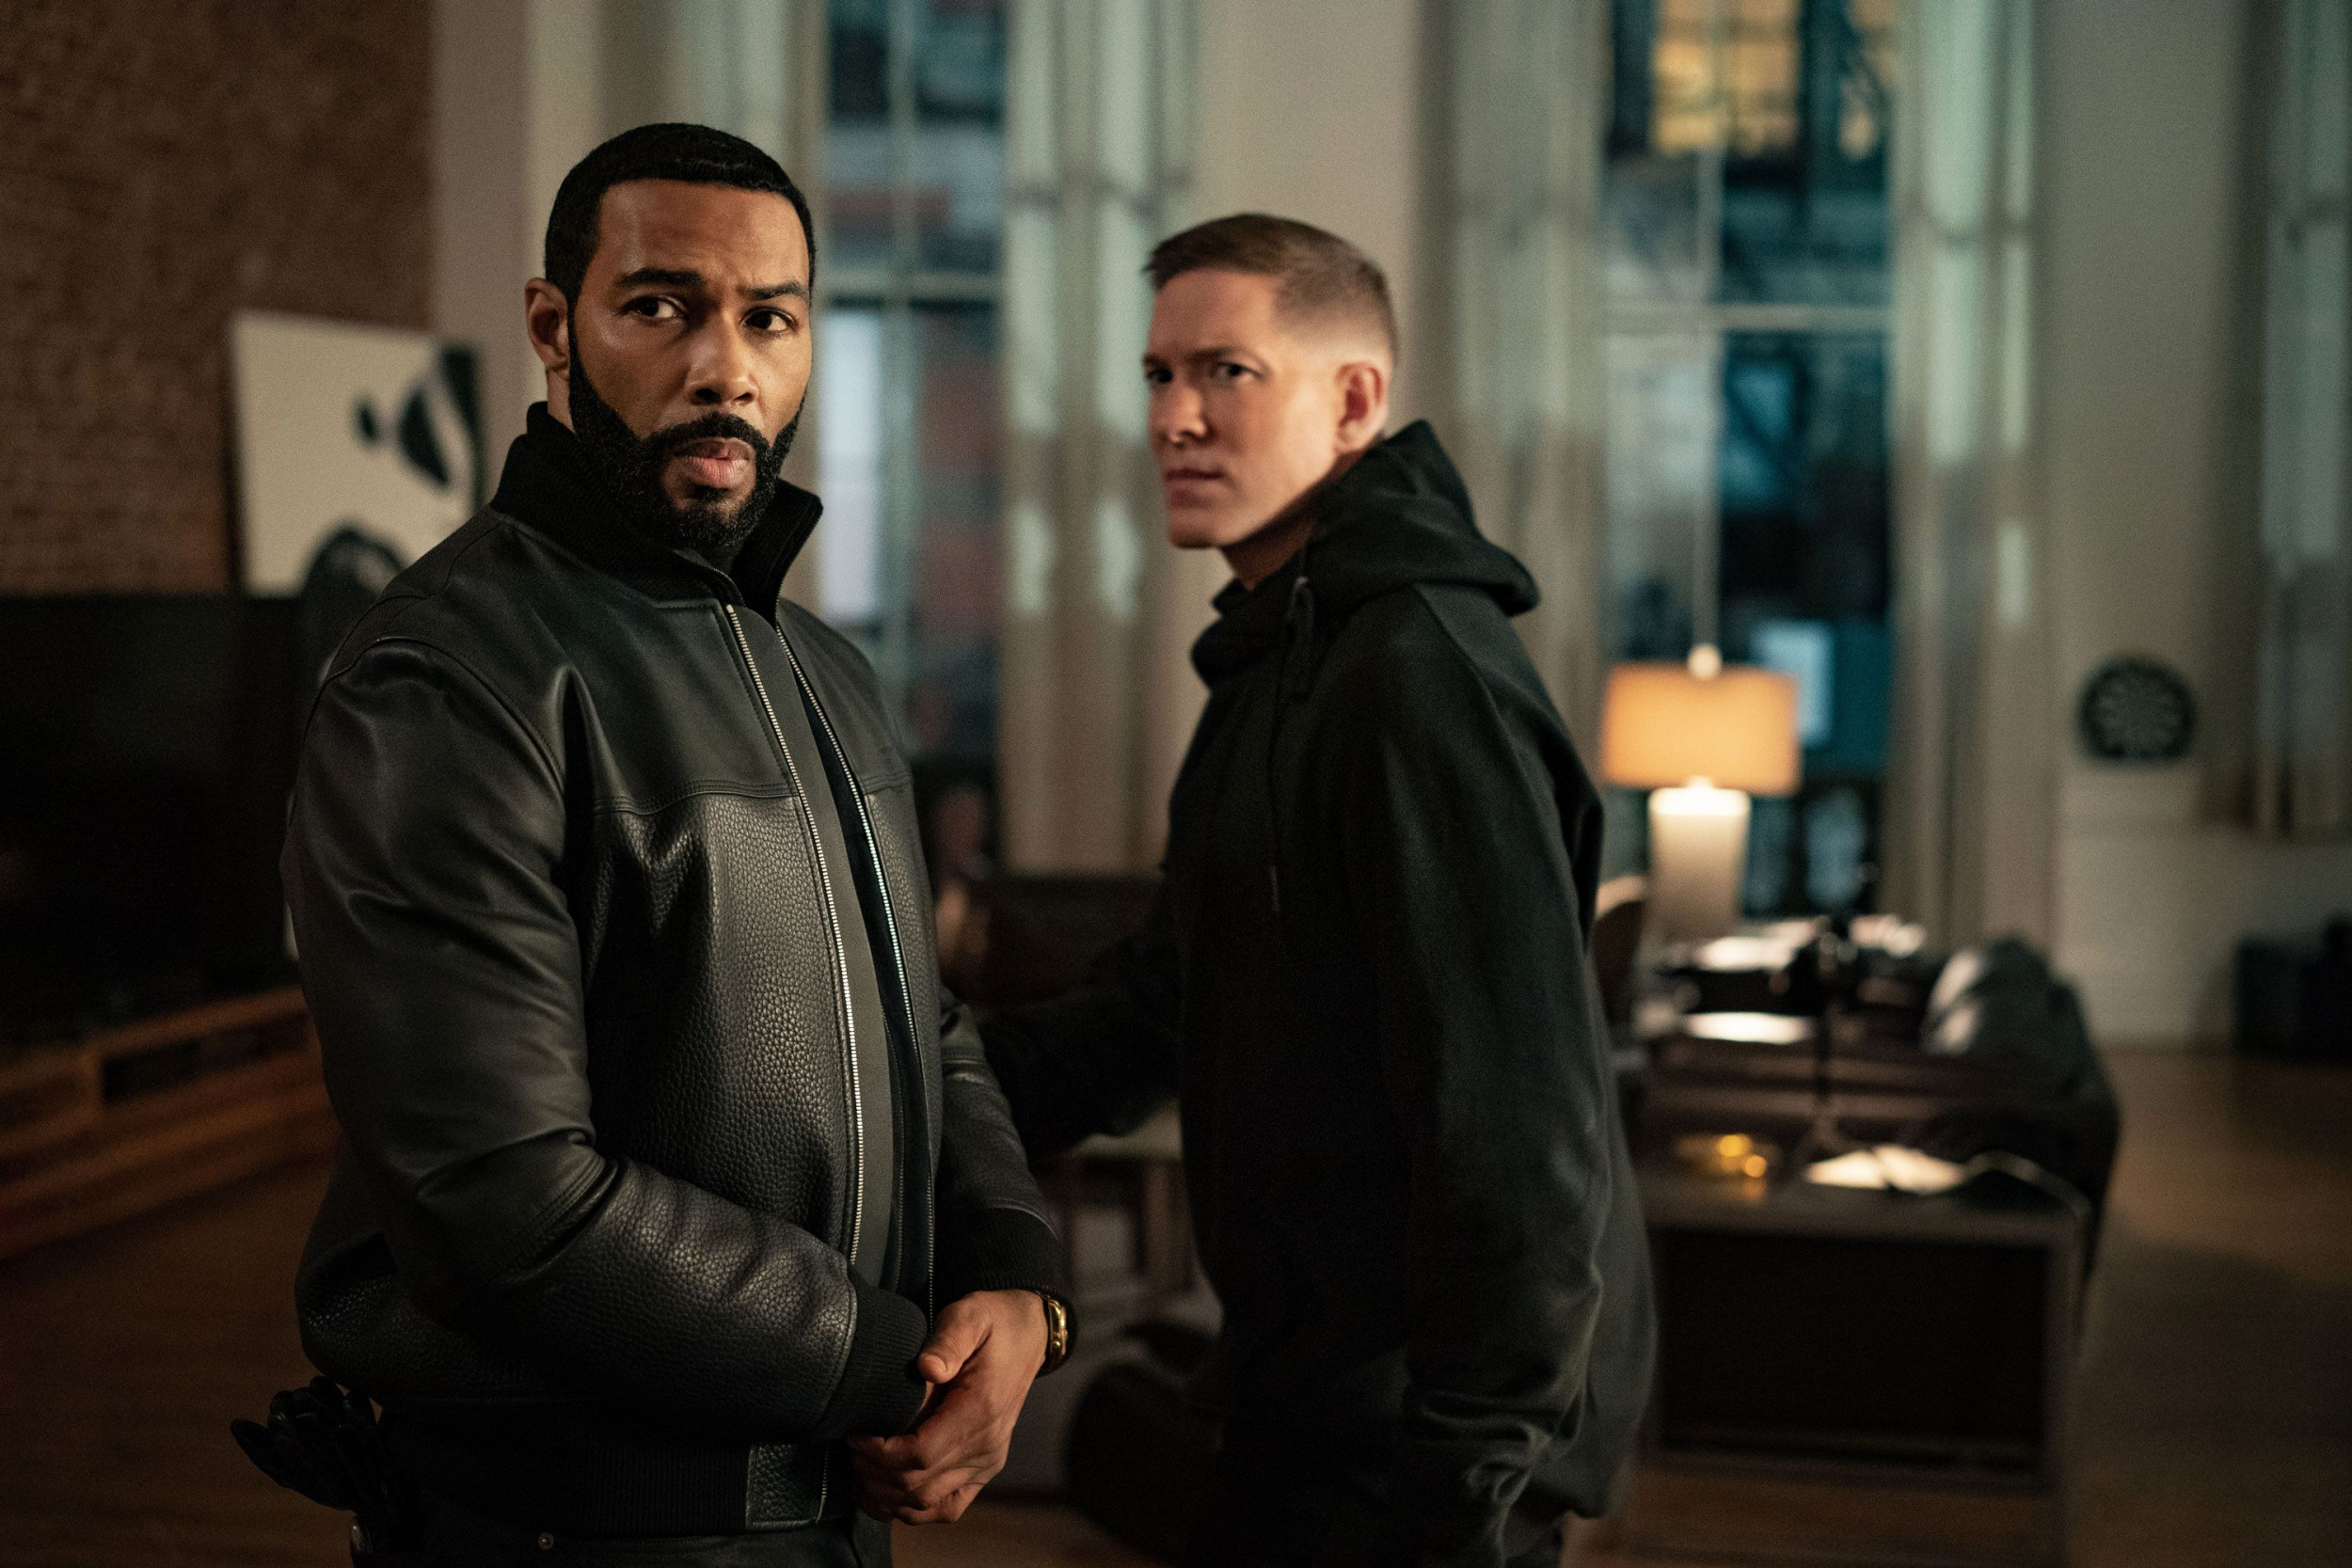 'Power': A Guilty Pleasure That Could Be Much More If It Wasn't So Conflicted